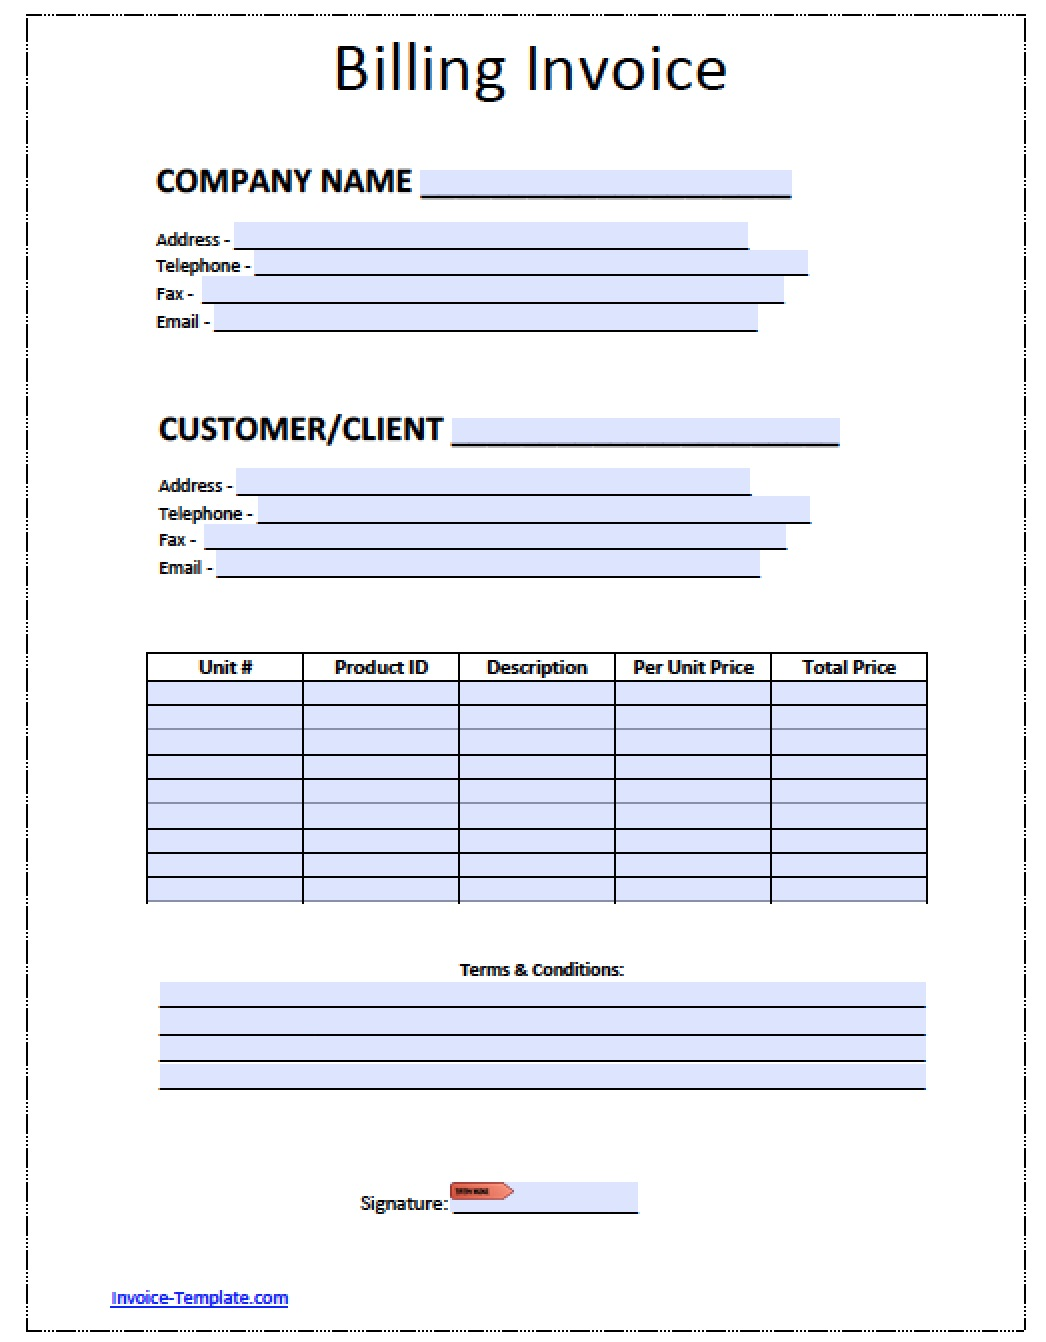 Offtheshelfus  Marvellous Billing Invoice Invoices Faq U Cloudflare Support Billing  With Glamorous Free Billing Invoice Template  Excel  Pdf  Word Doc  Billing With Adorable Invoice Web App Also Blank Canada Customs Invoice In Addition Invoices And Statements And Zoho Invoice Quickbooks As Well As Website Invoice Sample Additionally Microsoft Word  Invoice Template From Happytomco With Offtheshelfus  Glamorous Billing Invoice Invoices Faq U Cloudflare Support Billing  With Adorable Free Billing Invoice Template  Excel  Pdf  Word Doc  Billing And Marvellous Invoice Web App Also Blank Canada Customs Invoice In Addition Invoices And Statements From Happytomco